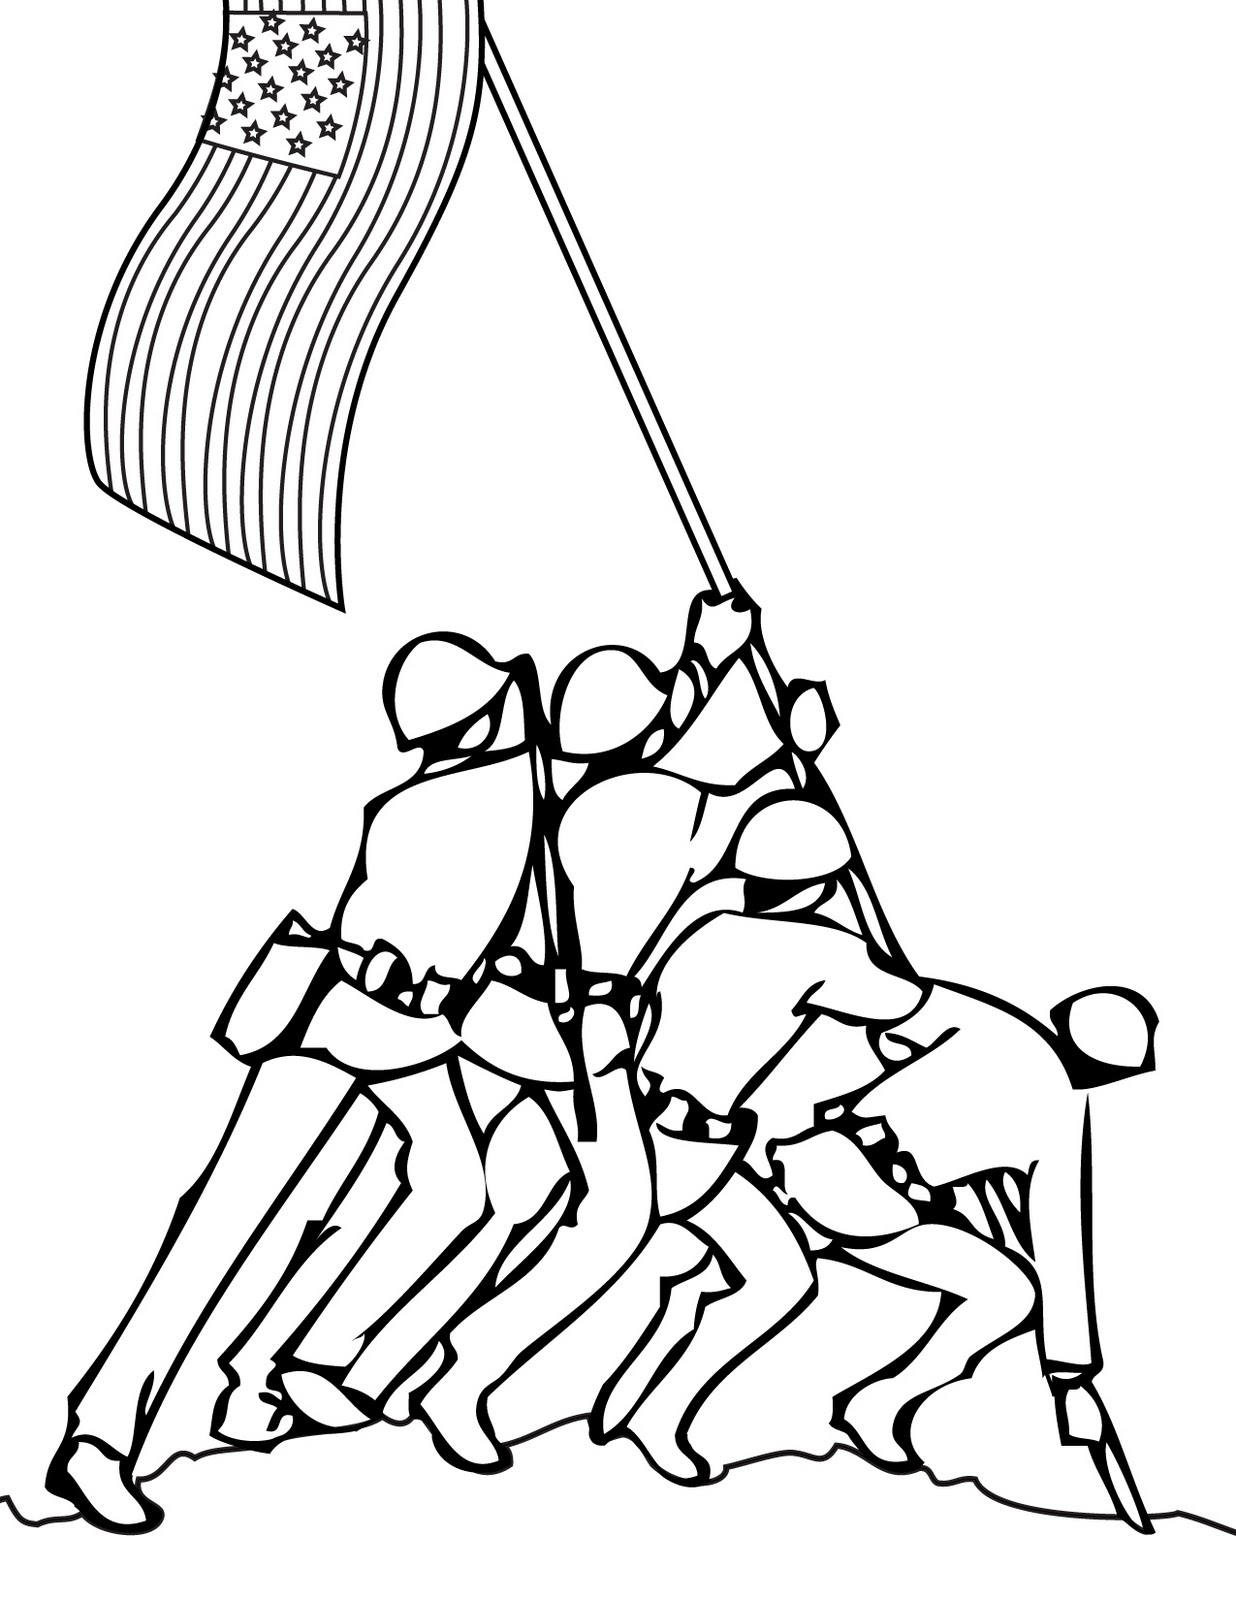 flag coloring pages vietnam - photo#20